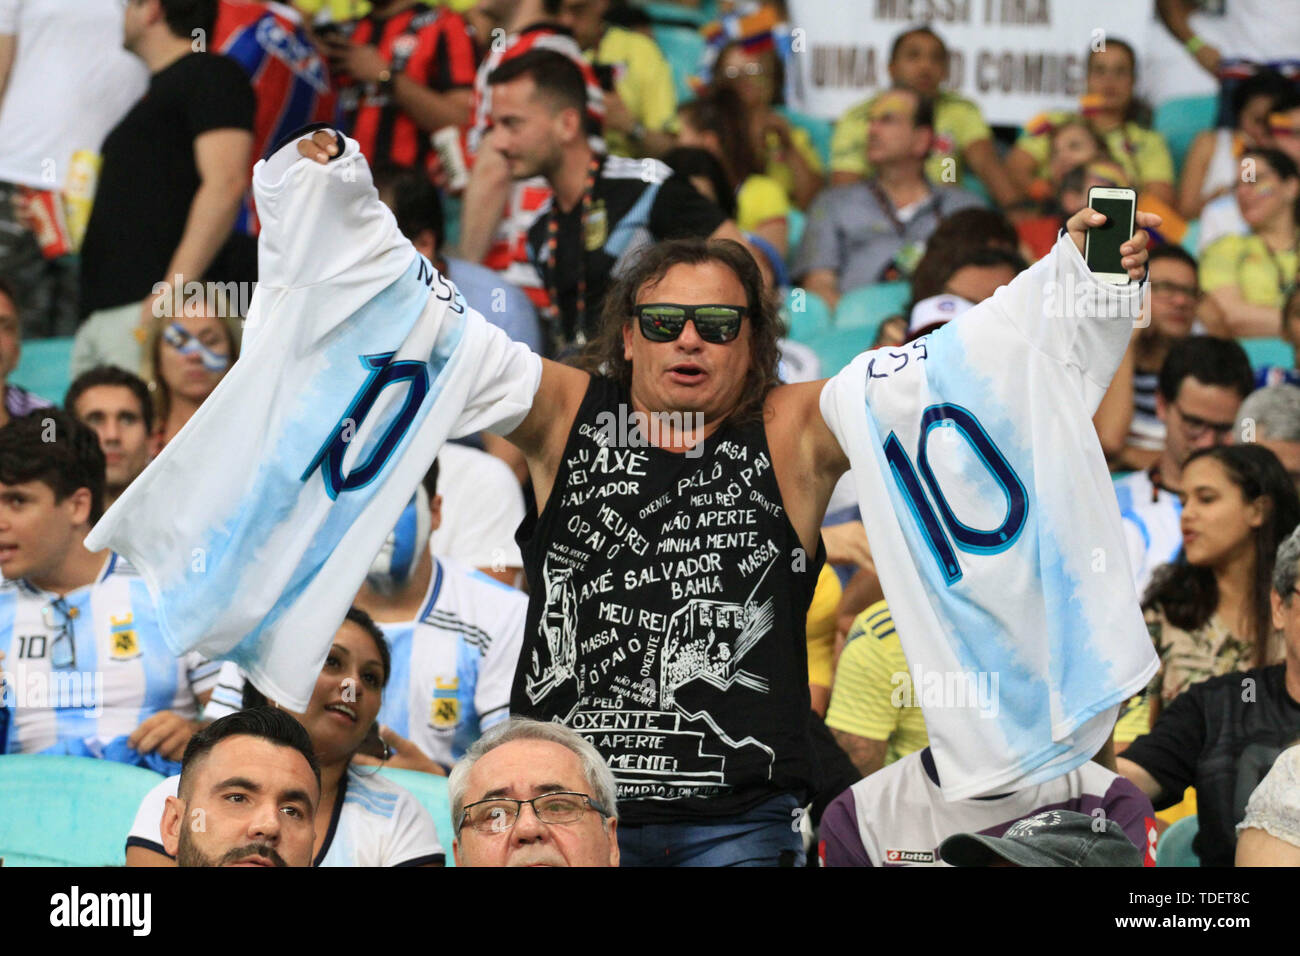 Salvador, Brazil. 15th June, 2019. Argentine fans during match between Argentina and Colombia, game 03, valid for the groups phase of Copa América 2019, held this Saturday, 15th, at the Fonte Nova Arena in Salvador, BA. Credit: Mauro Akiin Nassor/FotoArena/Alamy Live News - Stock Image